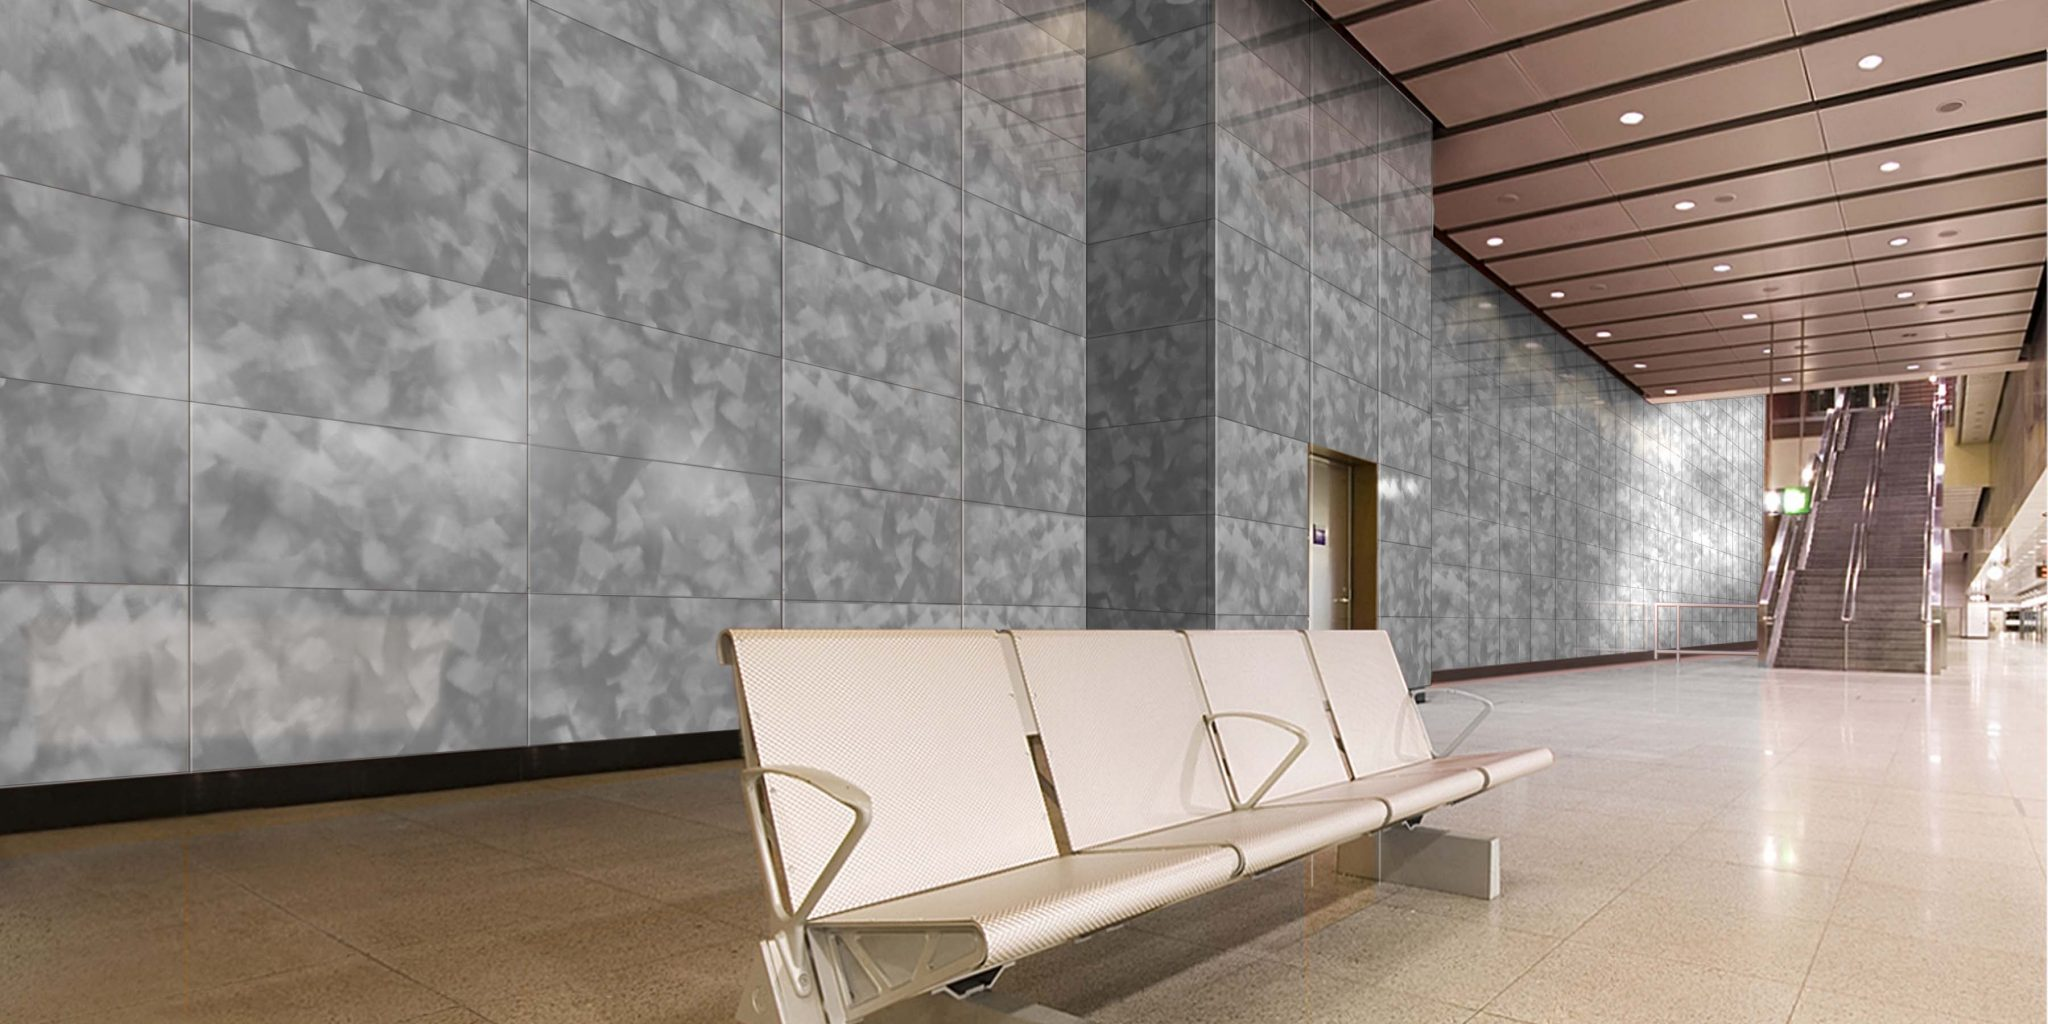 Flat walls moz designs decorative metal and architectural products terrace wall panels amipublicfo Images